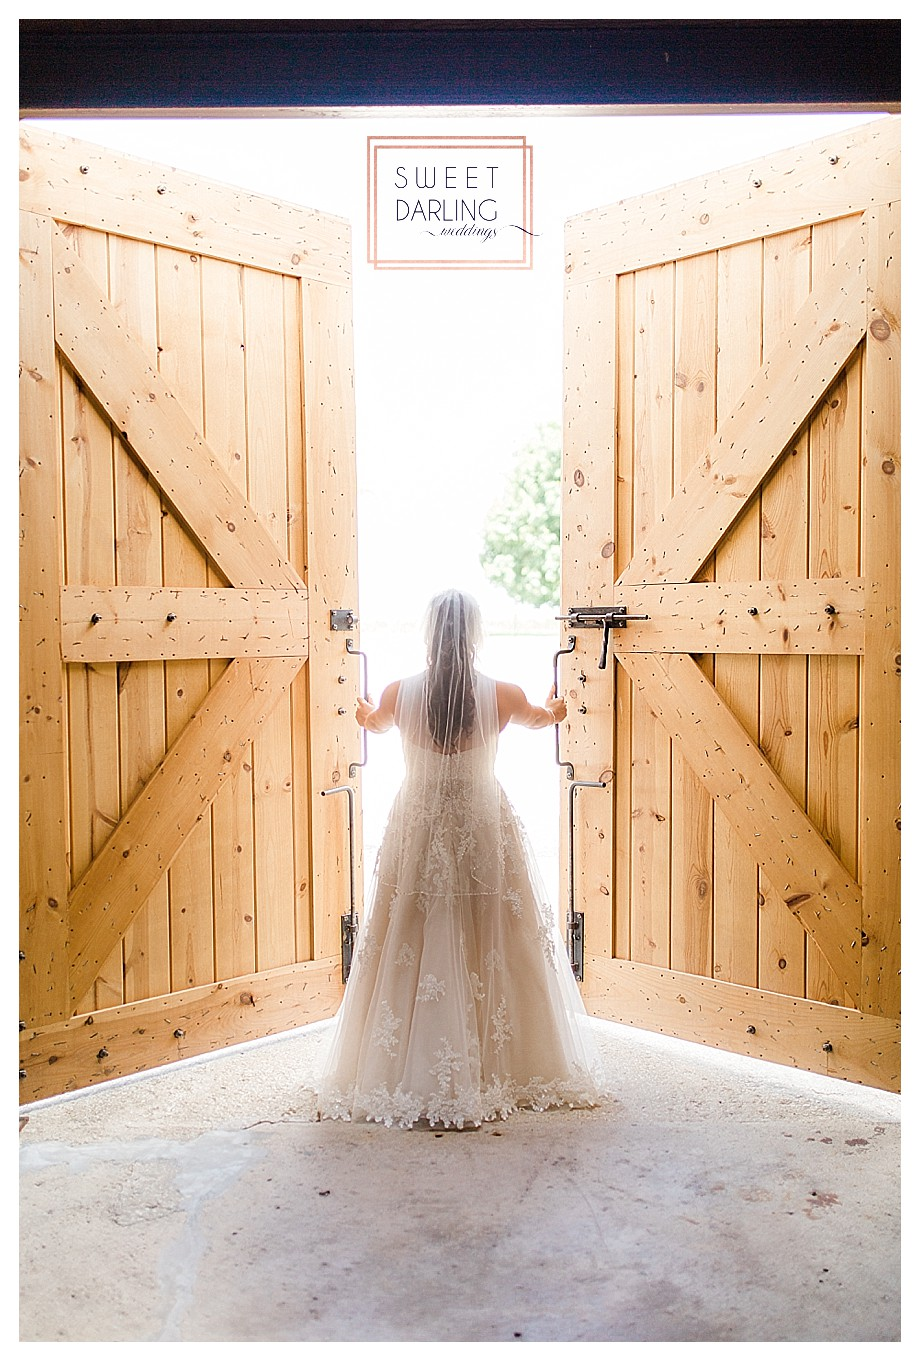 wedding-barn-farm-horses-sparkler-exit-Engelbrecht-Farm-Paxton-Illinois-Sweet-Darling-Weddings-Photographer_0461